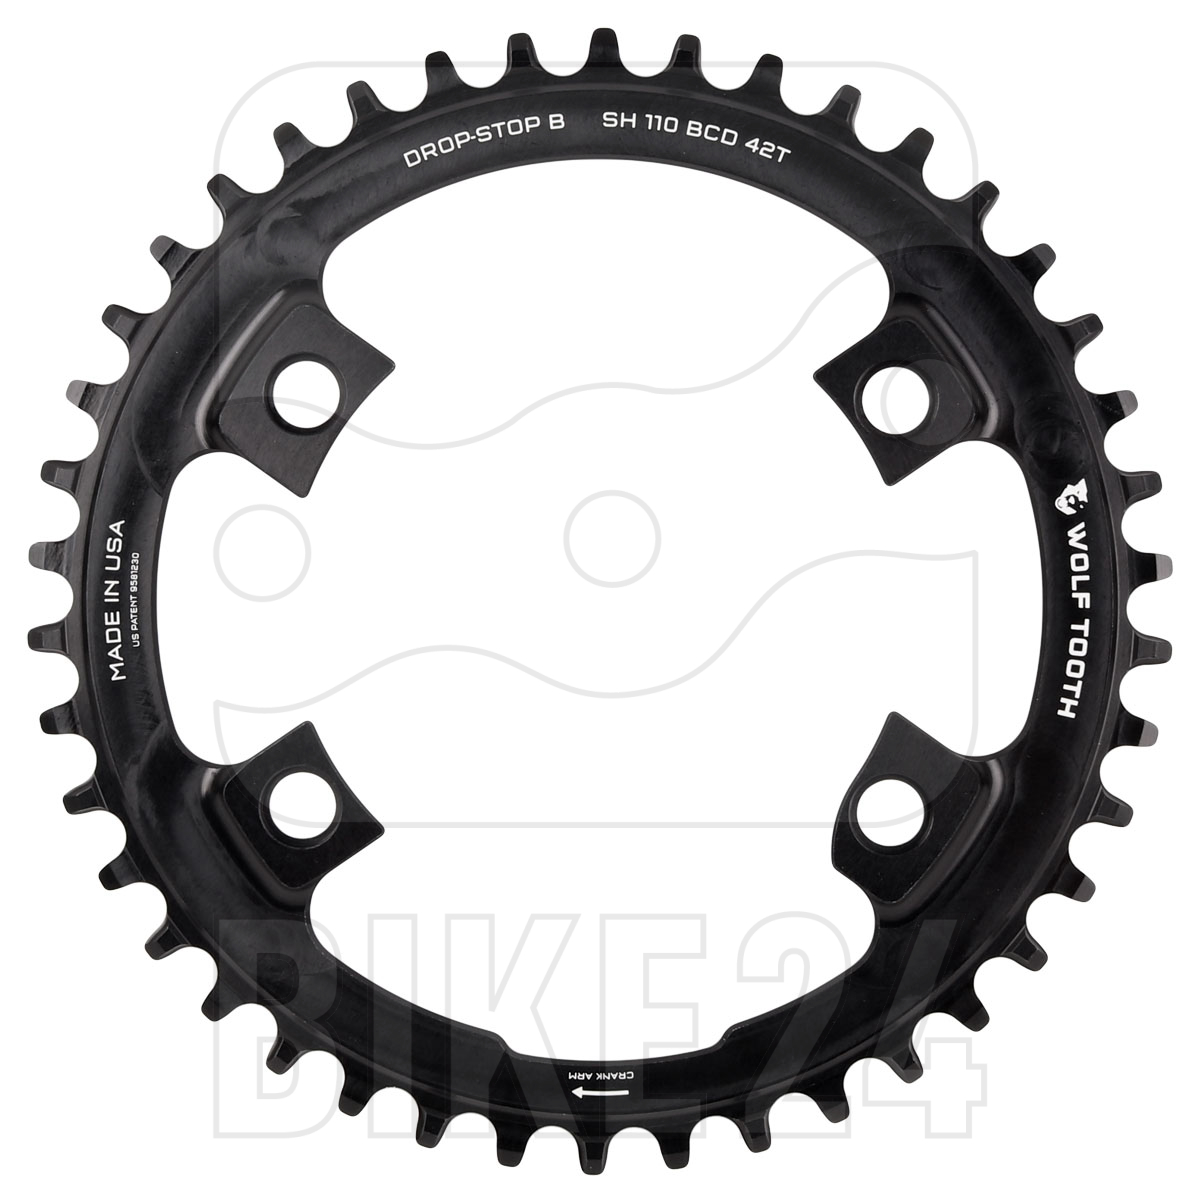 Wolf Tooth Single Chainring for Shimano 110 BCD Asymmetric 4-Bolt - Drop Stop B - black